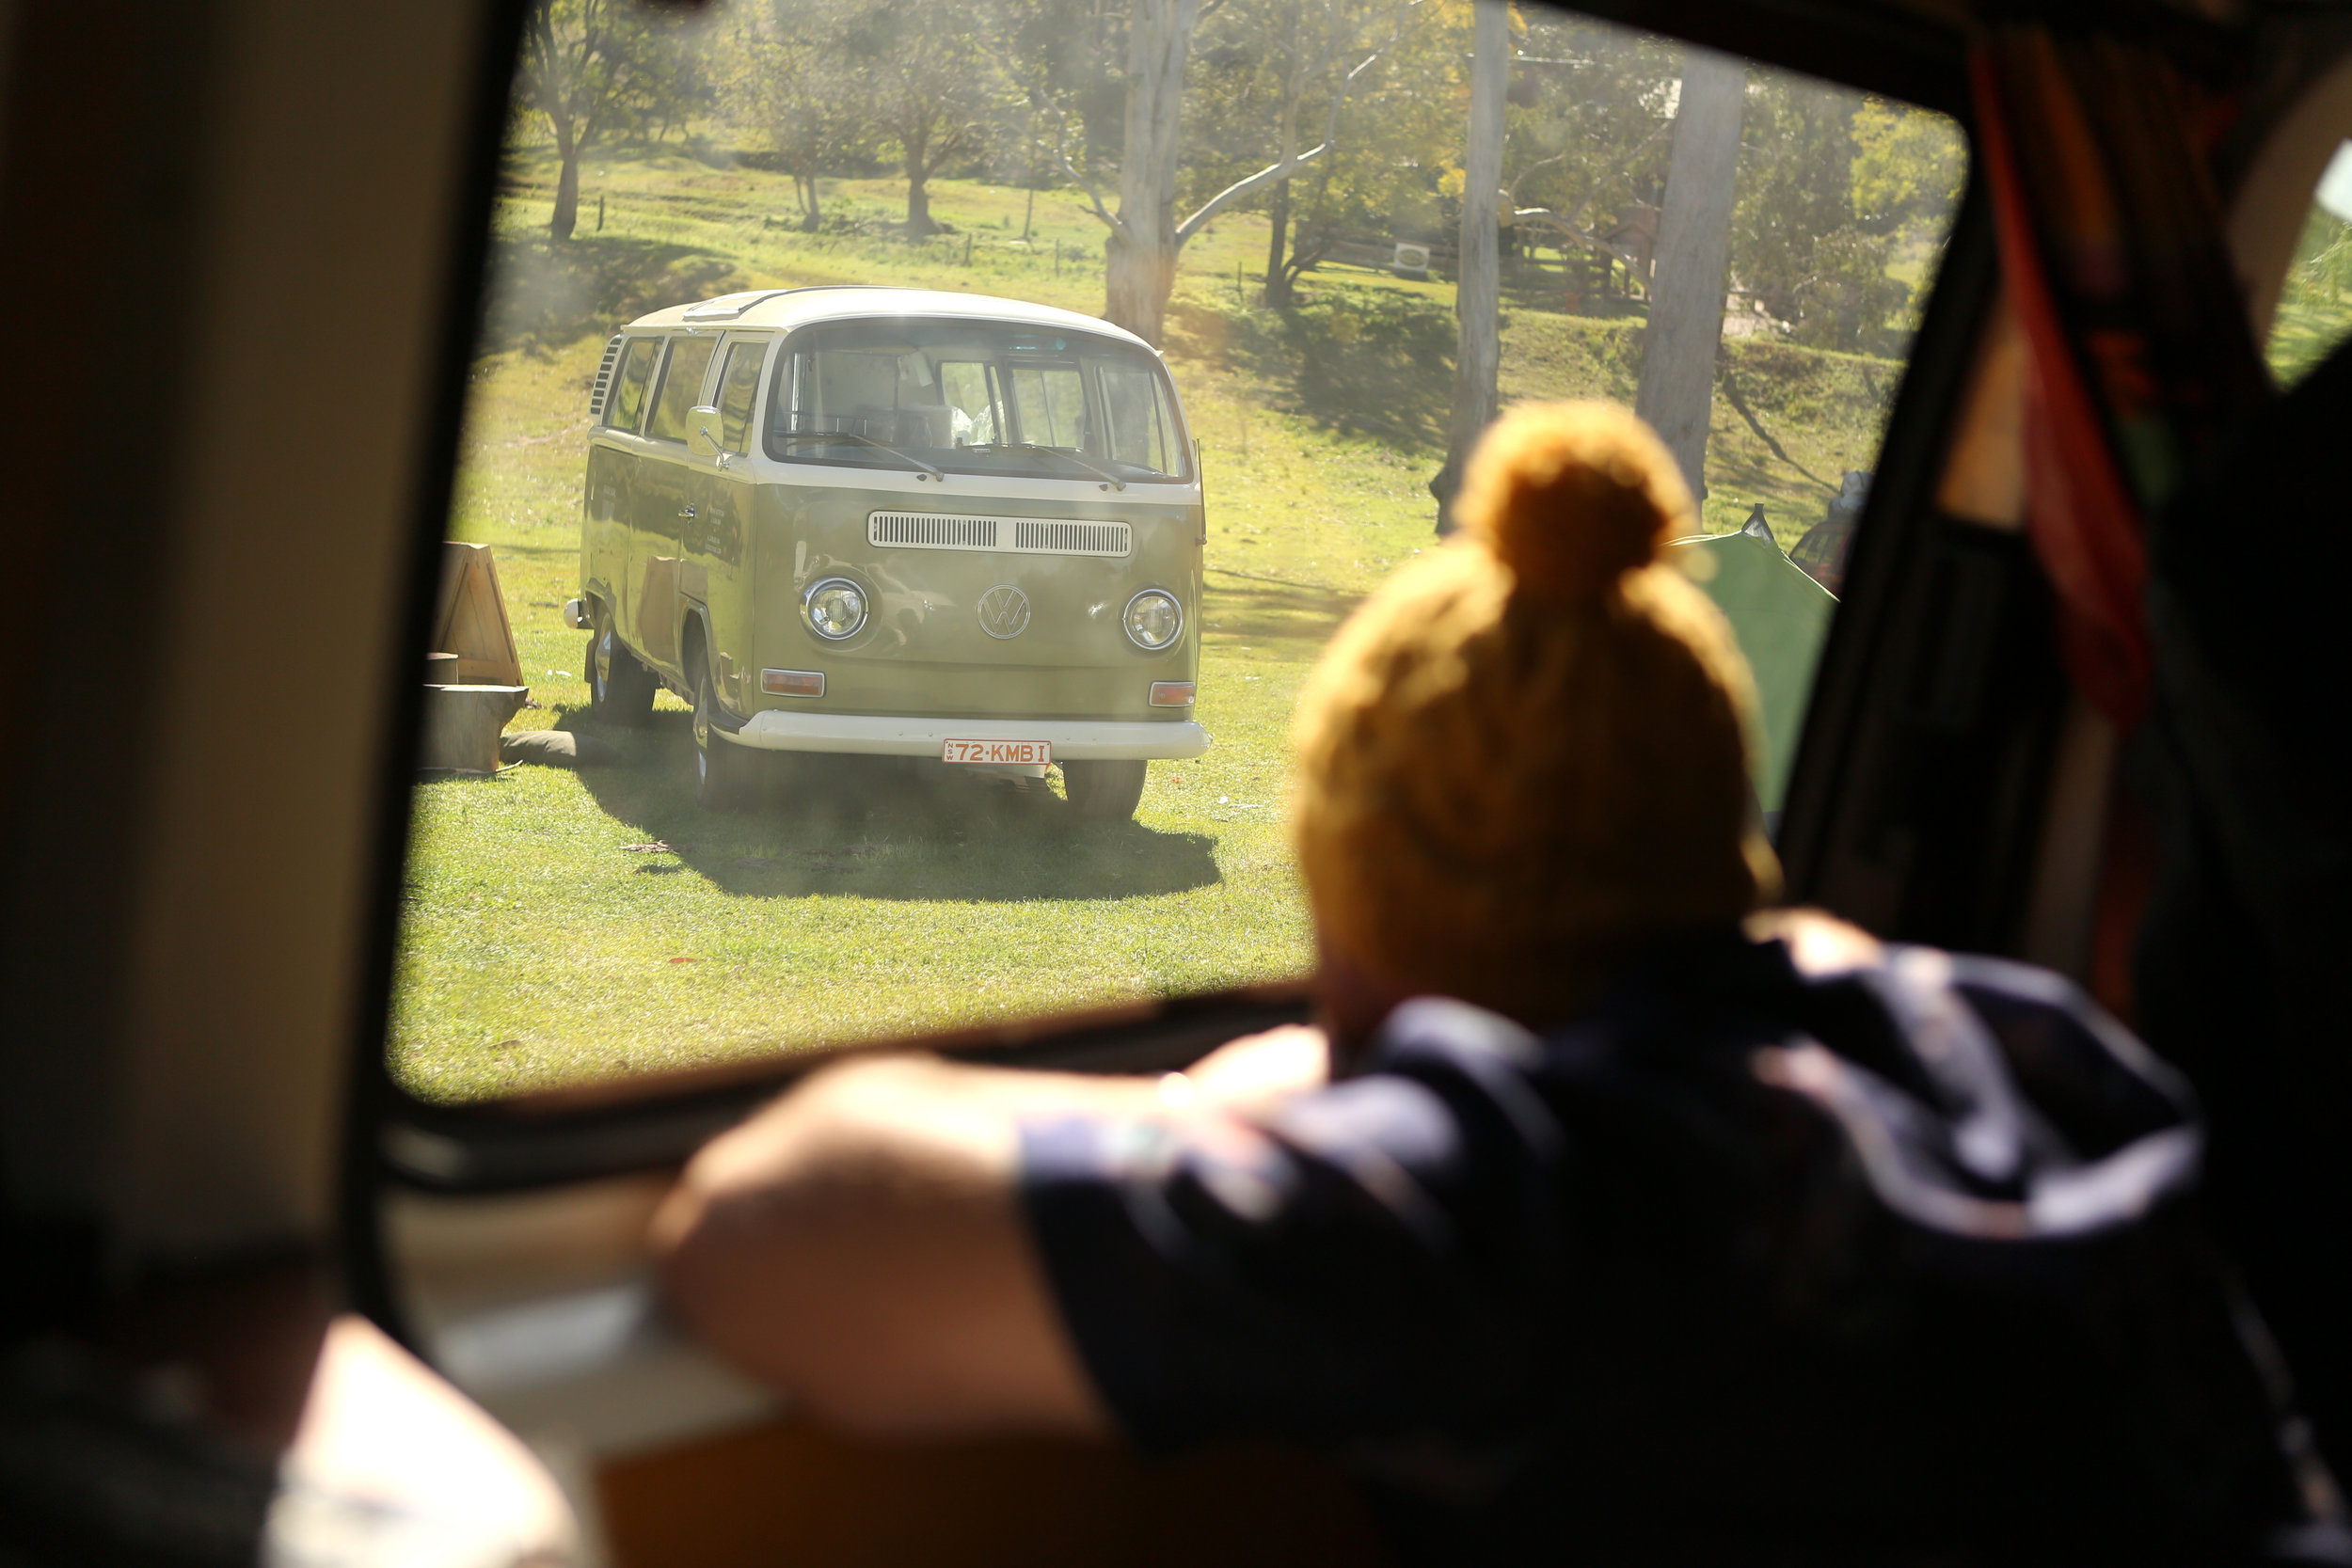 You can check out the Vanlife website:  www.vanlife.com.au  and on Instagram  @vanlifediaries . The next Vanlife Gathering will be held in Cudgen, NSW from the 26th - 28th May 2017. Get your tickets online.